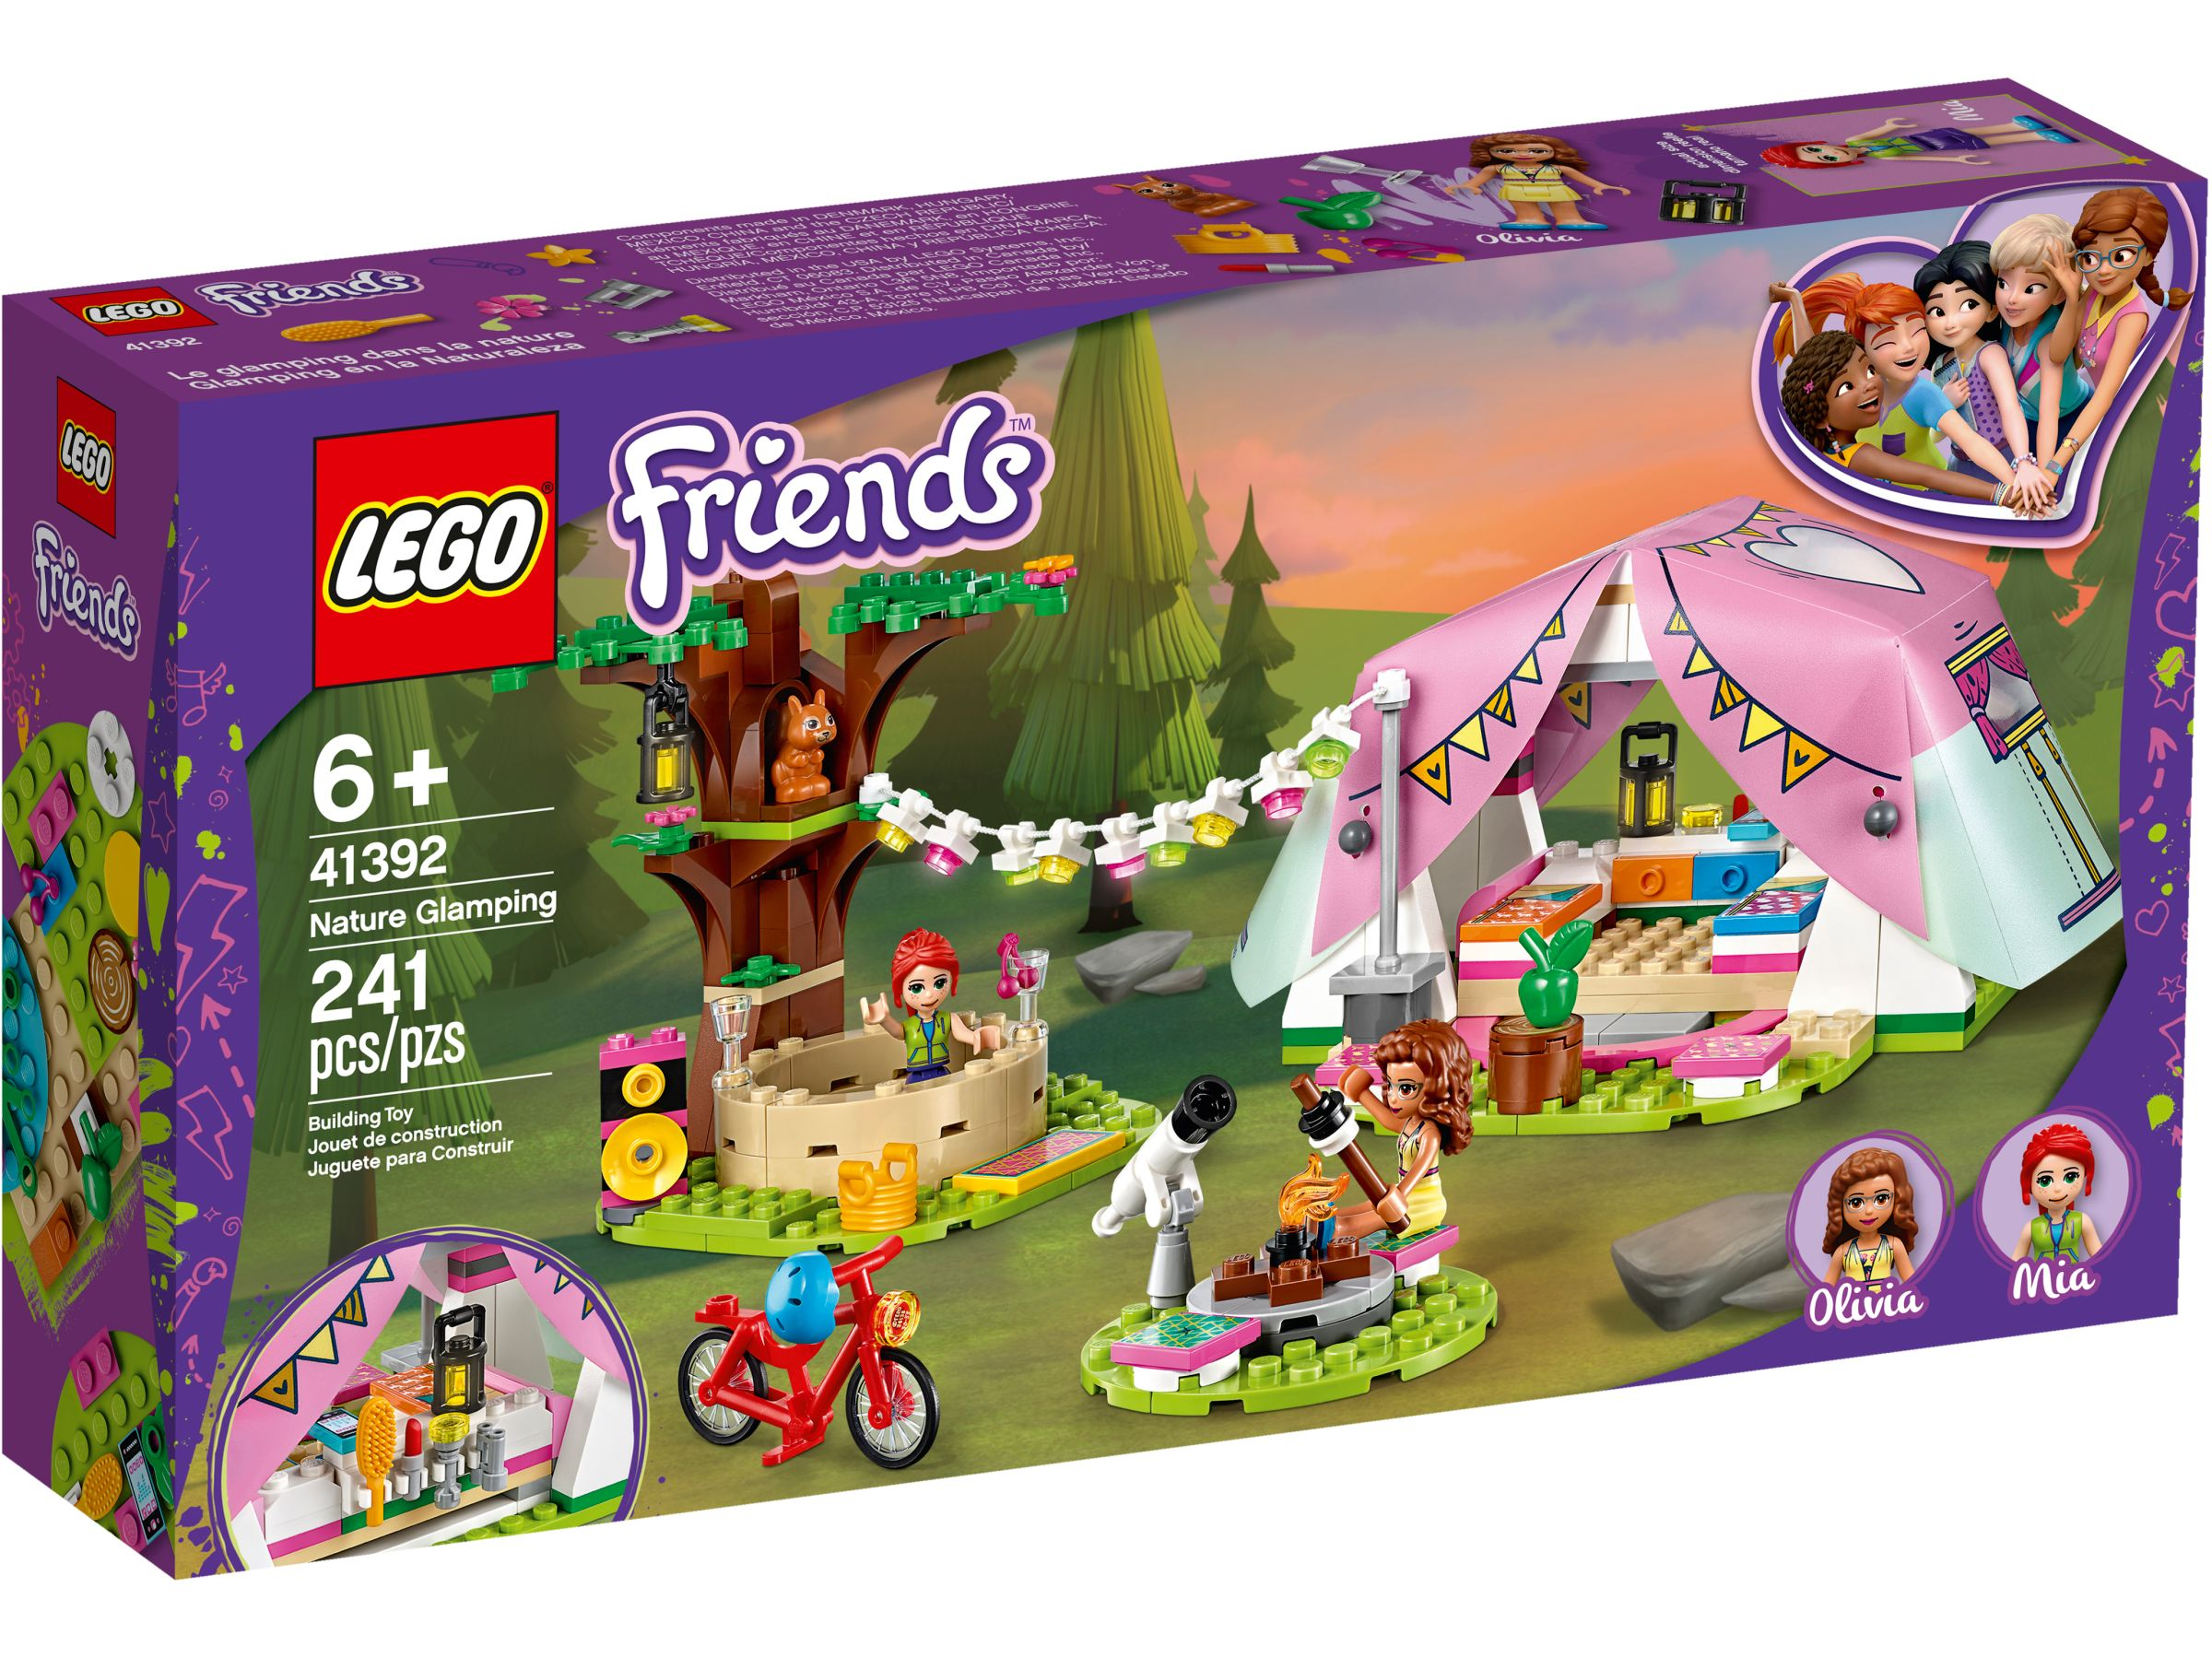 LEGO Friends 41392 Camping in Heartlake City LEGO_41392_alt1.jpg